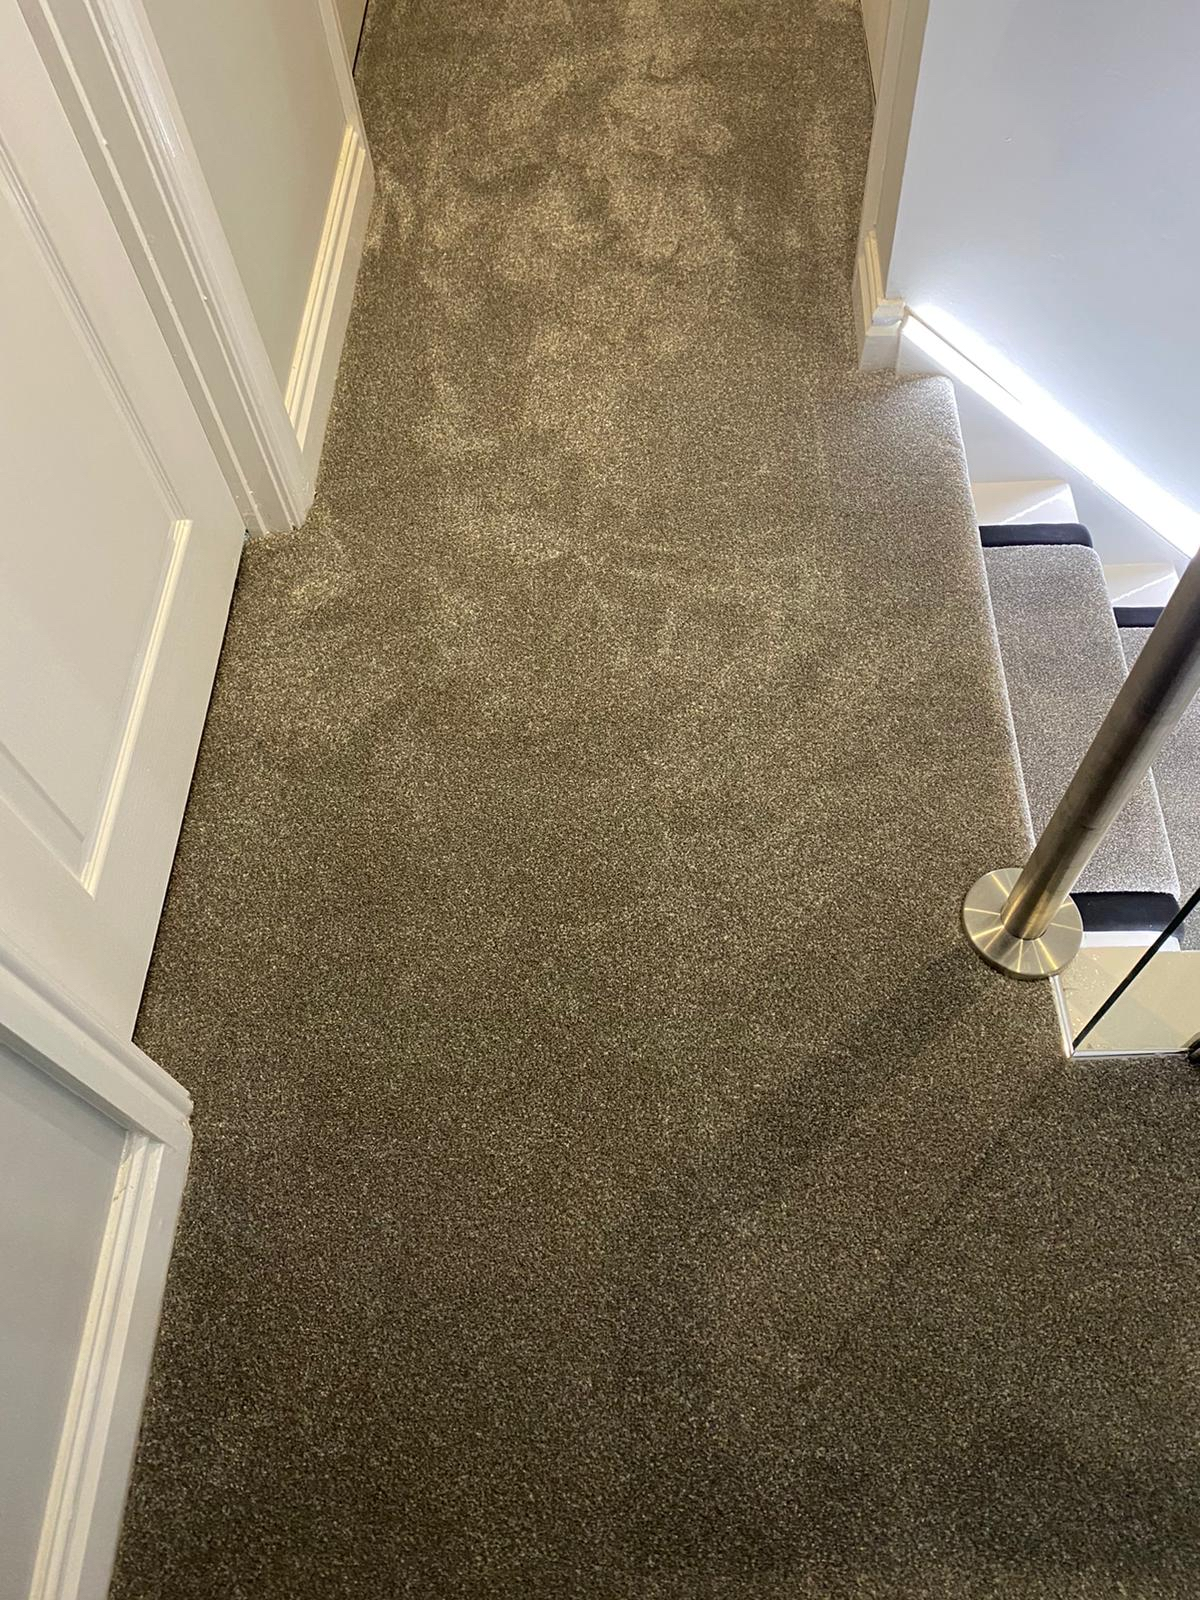 Luxury carpet to landing with bound edges to stairs